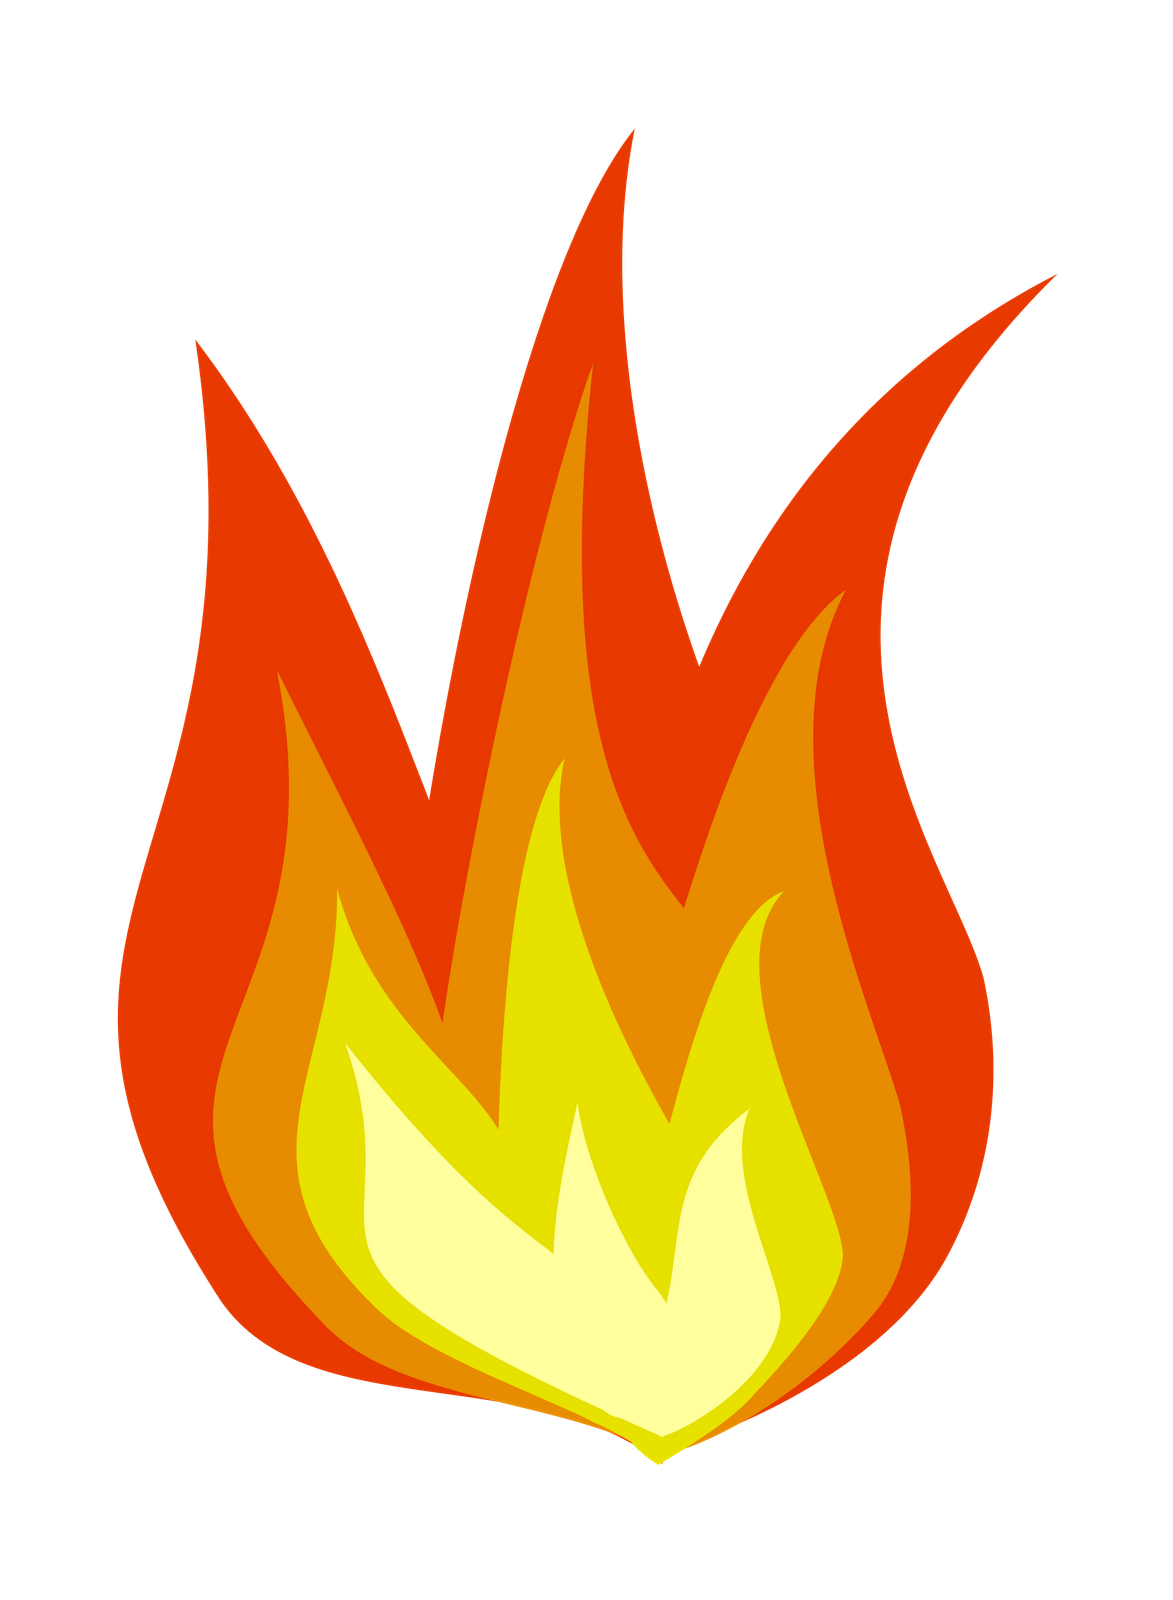 Flames clipart pentecost flame. Holy spirit tongues of